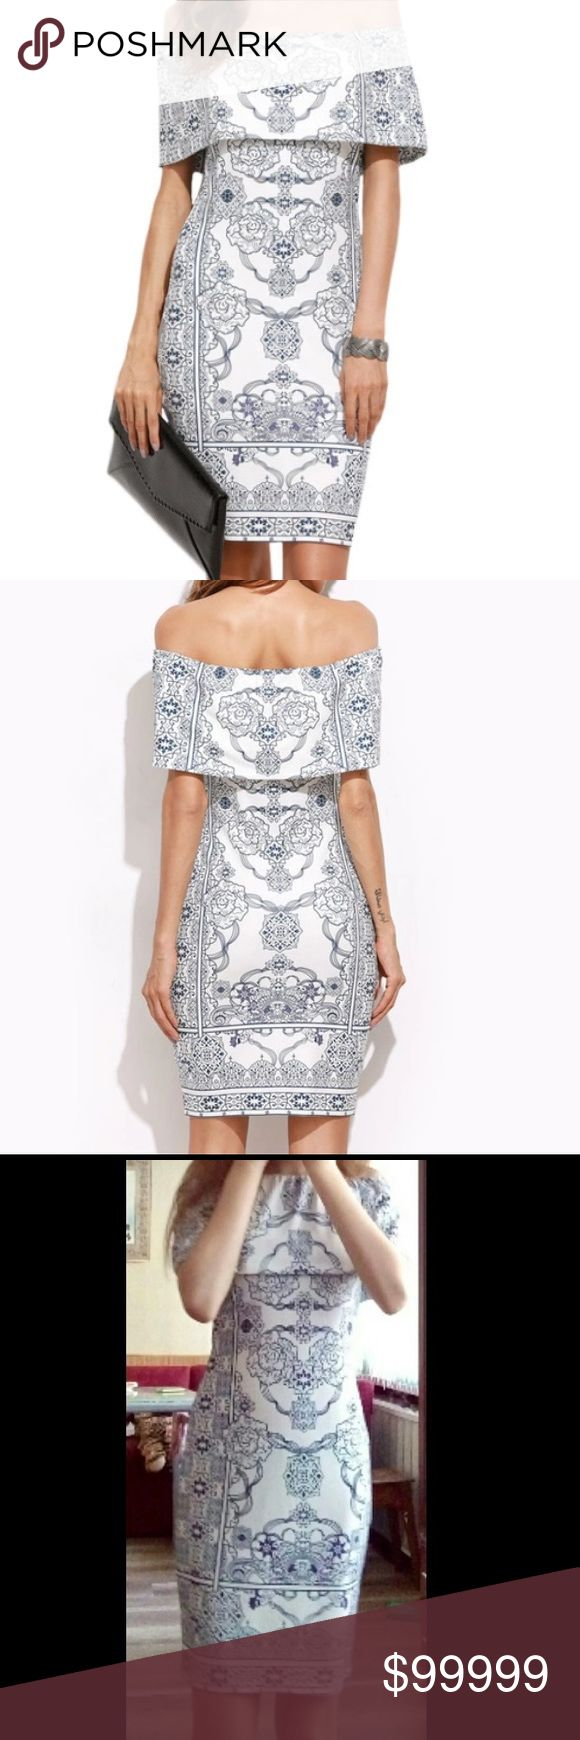 Coming soon Beautiful, form fitting, off the shoulder boho bodycon dress. Runs small (Please see measurements). Made of polyester and spandex so It'll help you flatten any belly imperfections and give you a feminine hourglass shape! Dresses Midi